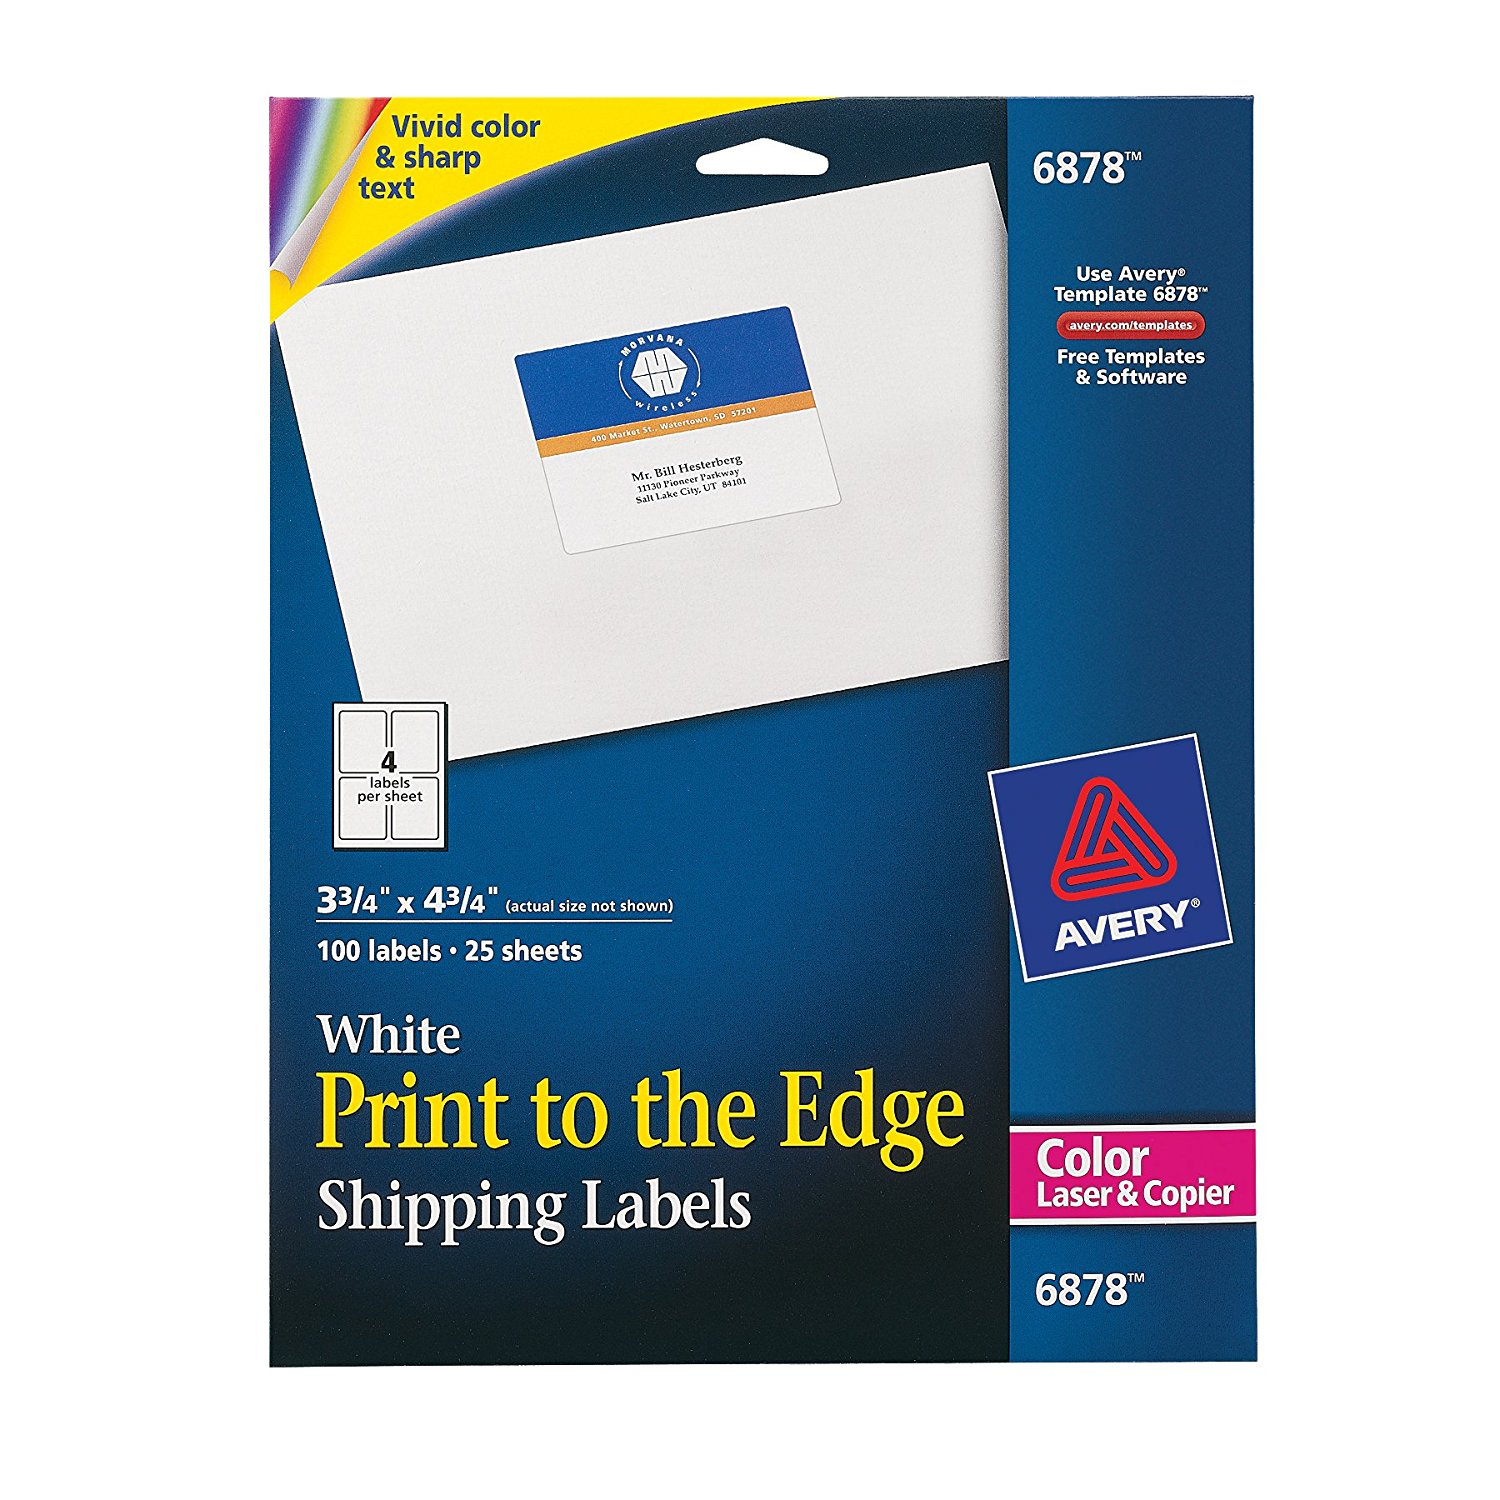 Print To The Edge Shipping Labels For Color Laser Printers And